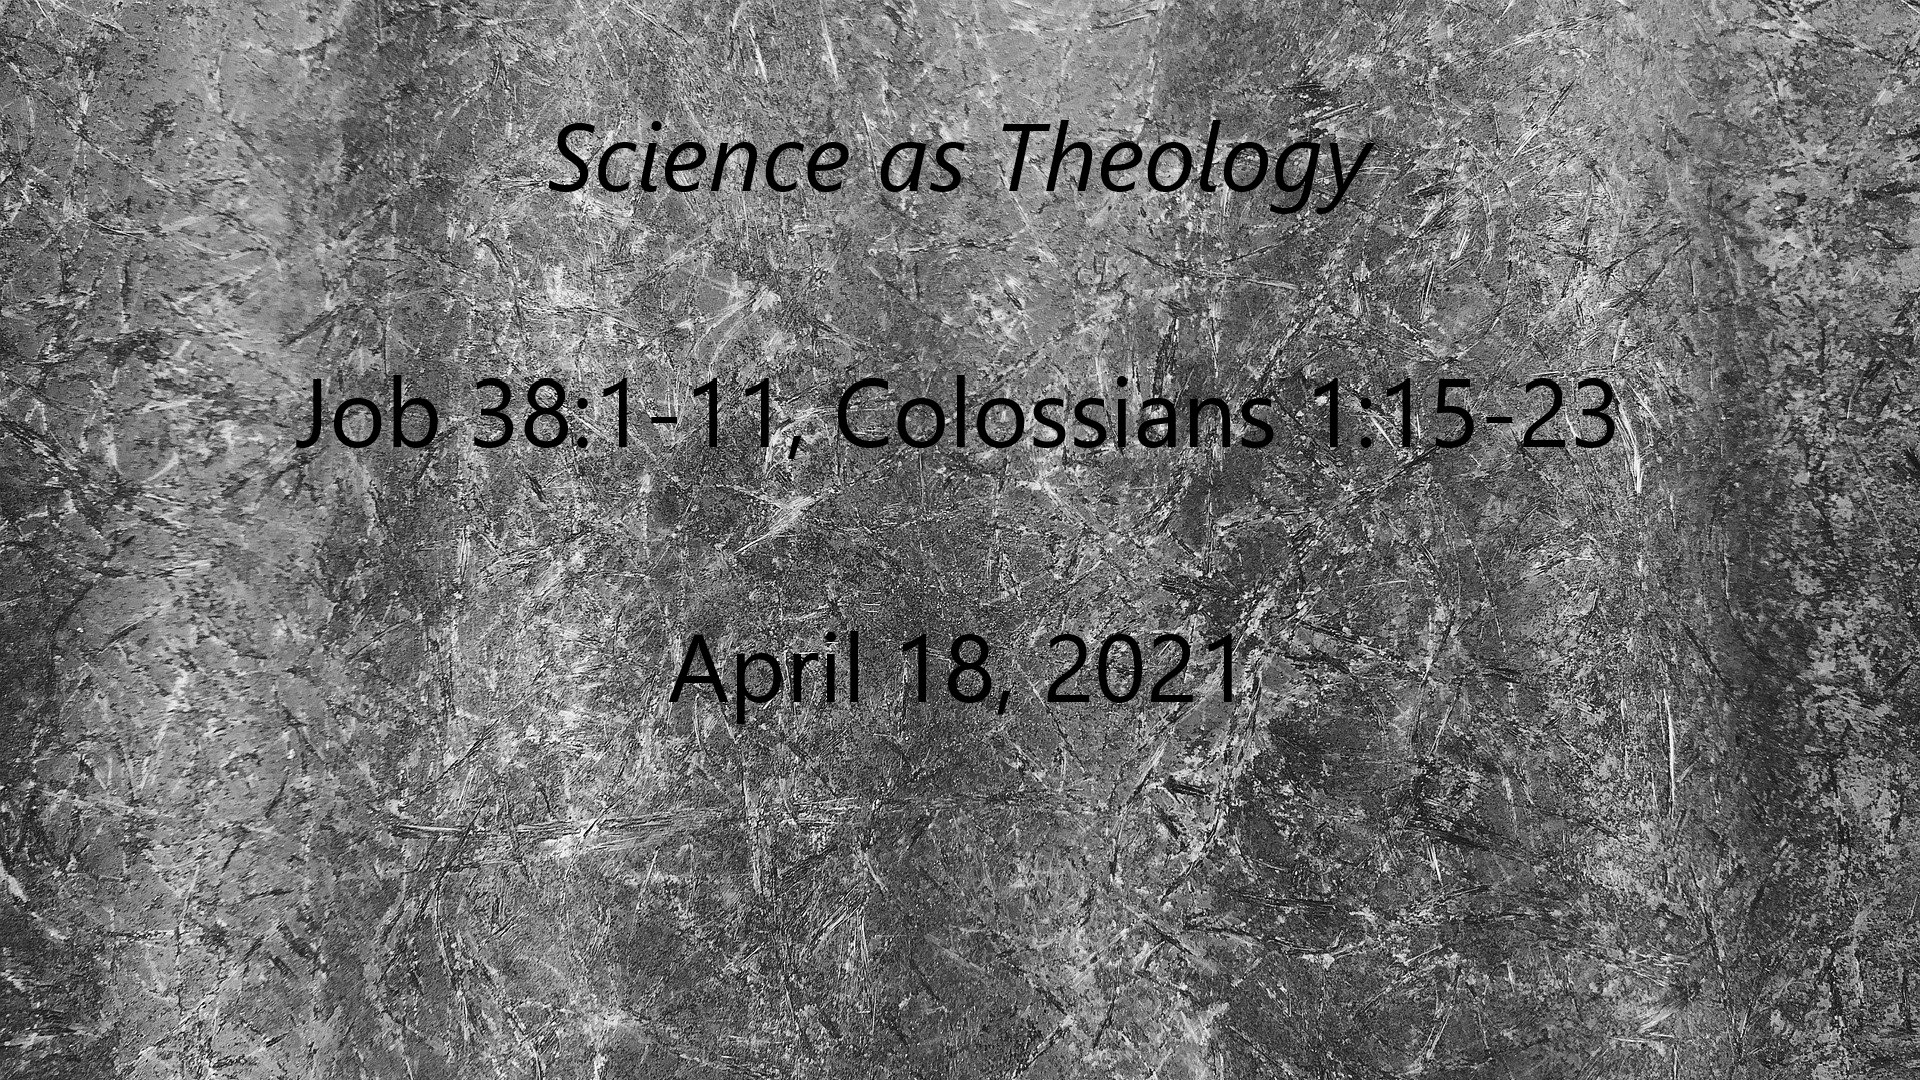 Science as Theology